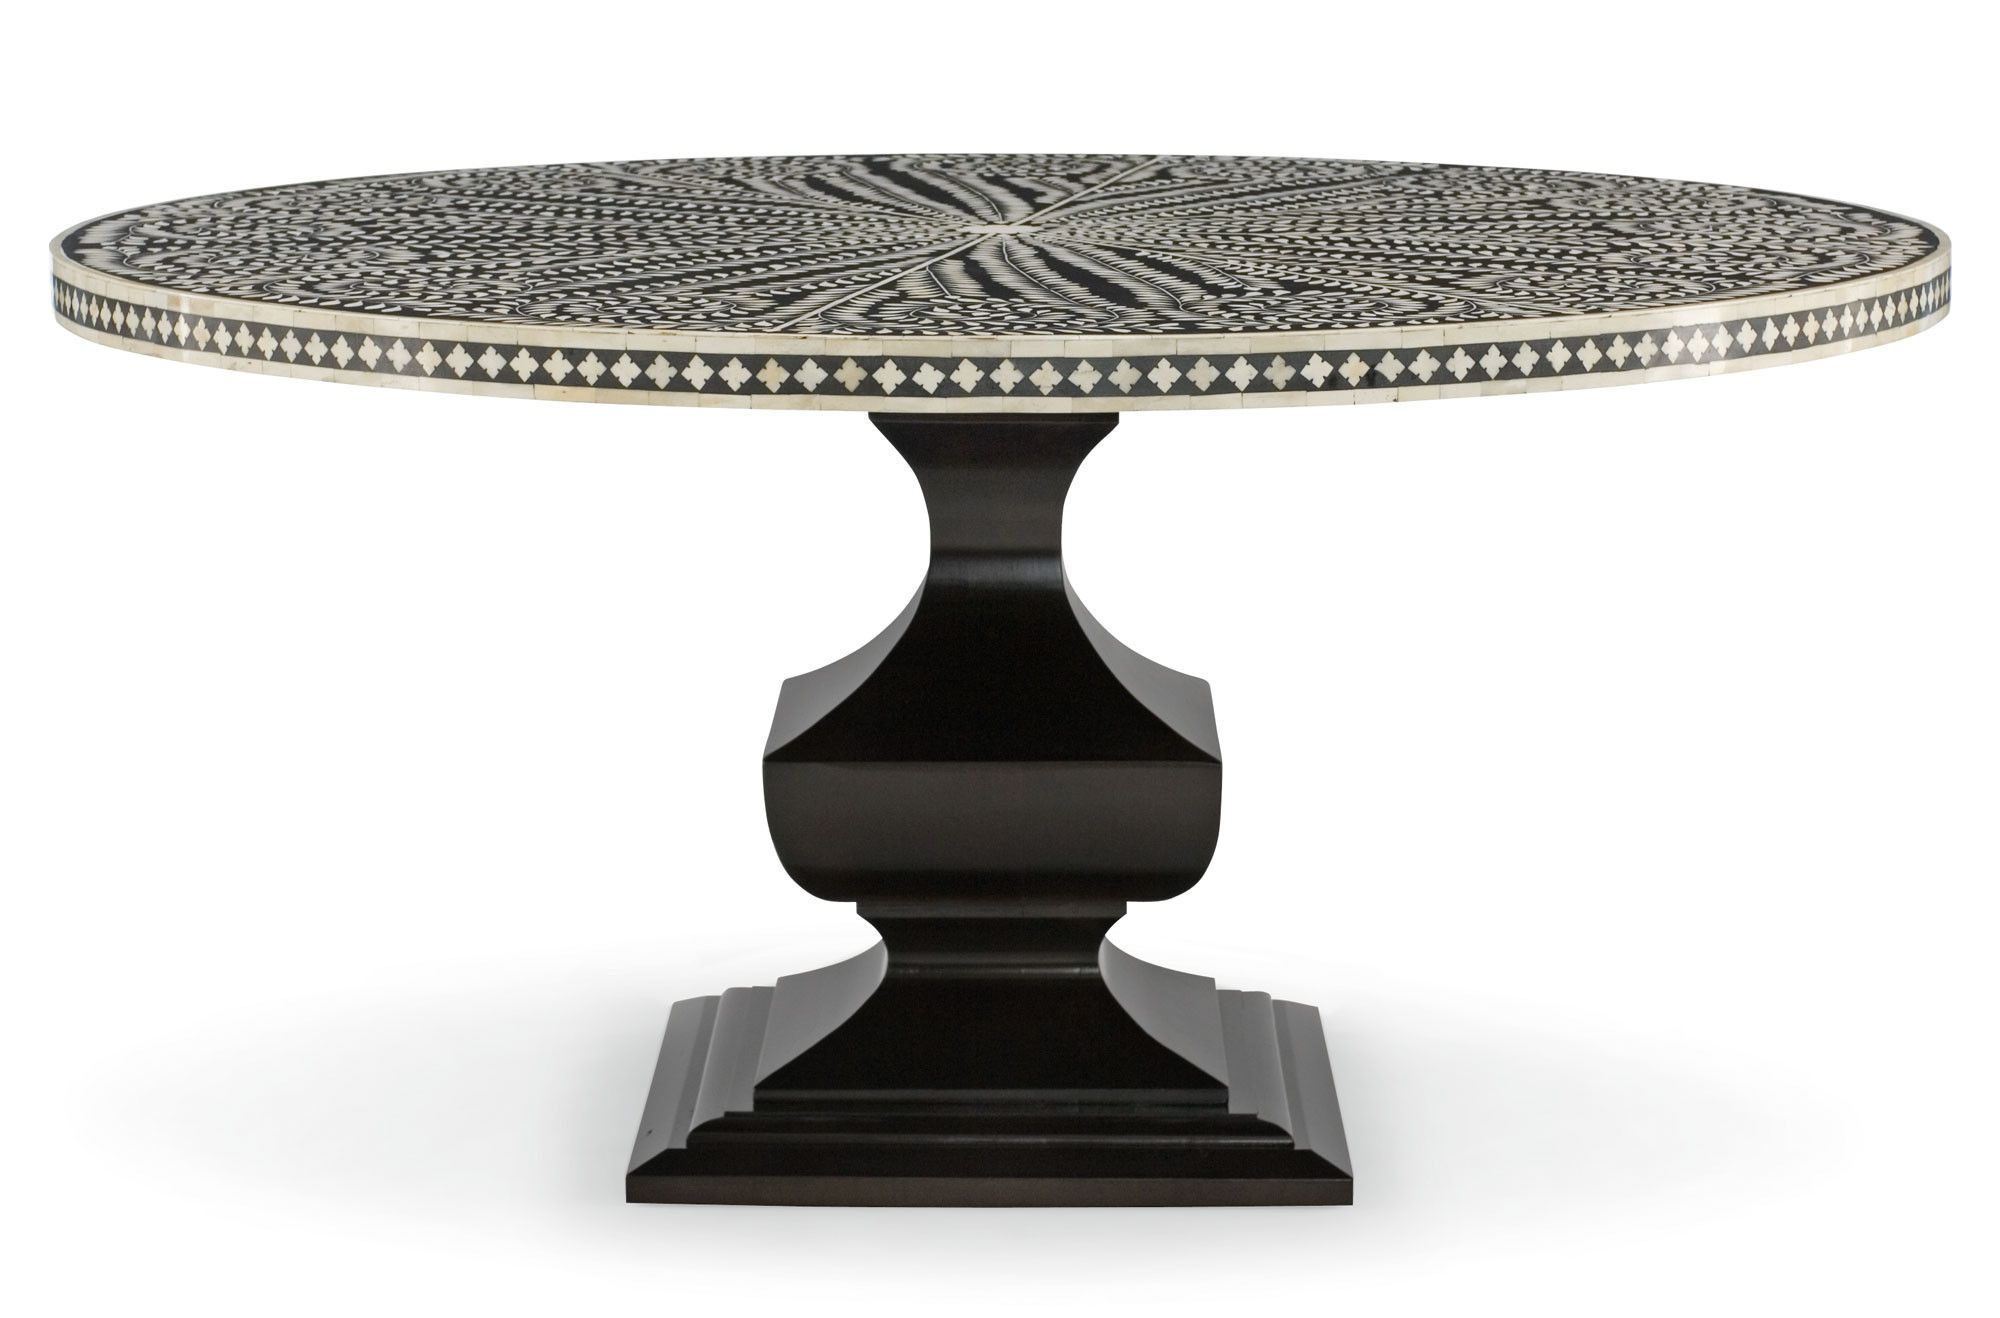 Contemporary dining table bases  Barnsley Dining Table  Bernhardt  Tables  Pinterest  Barnsley